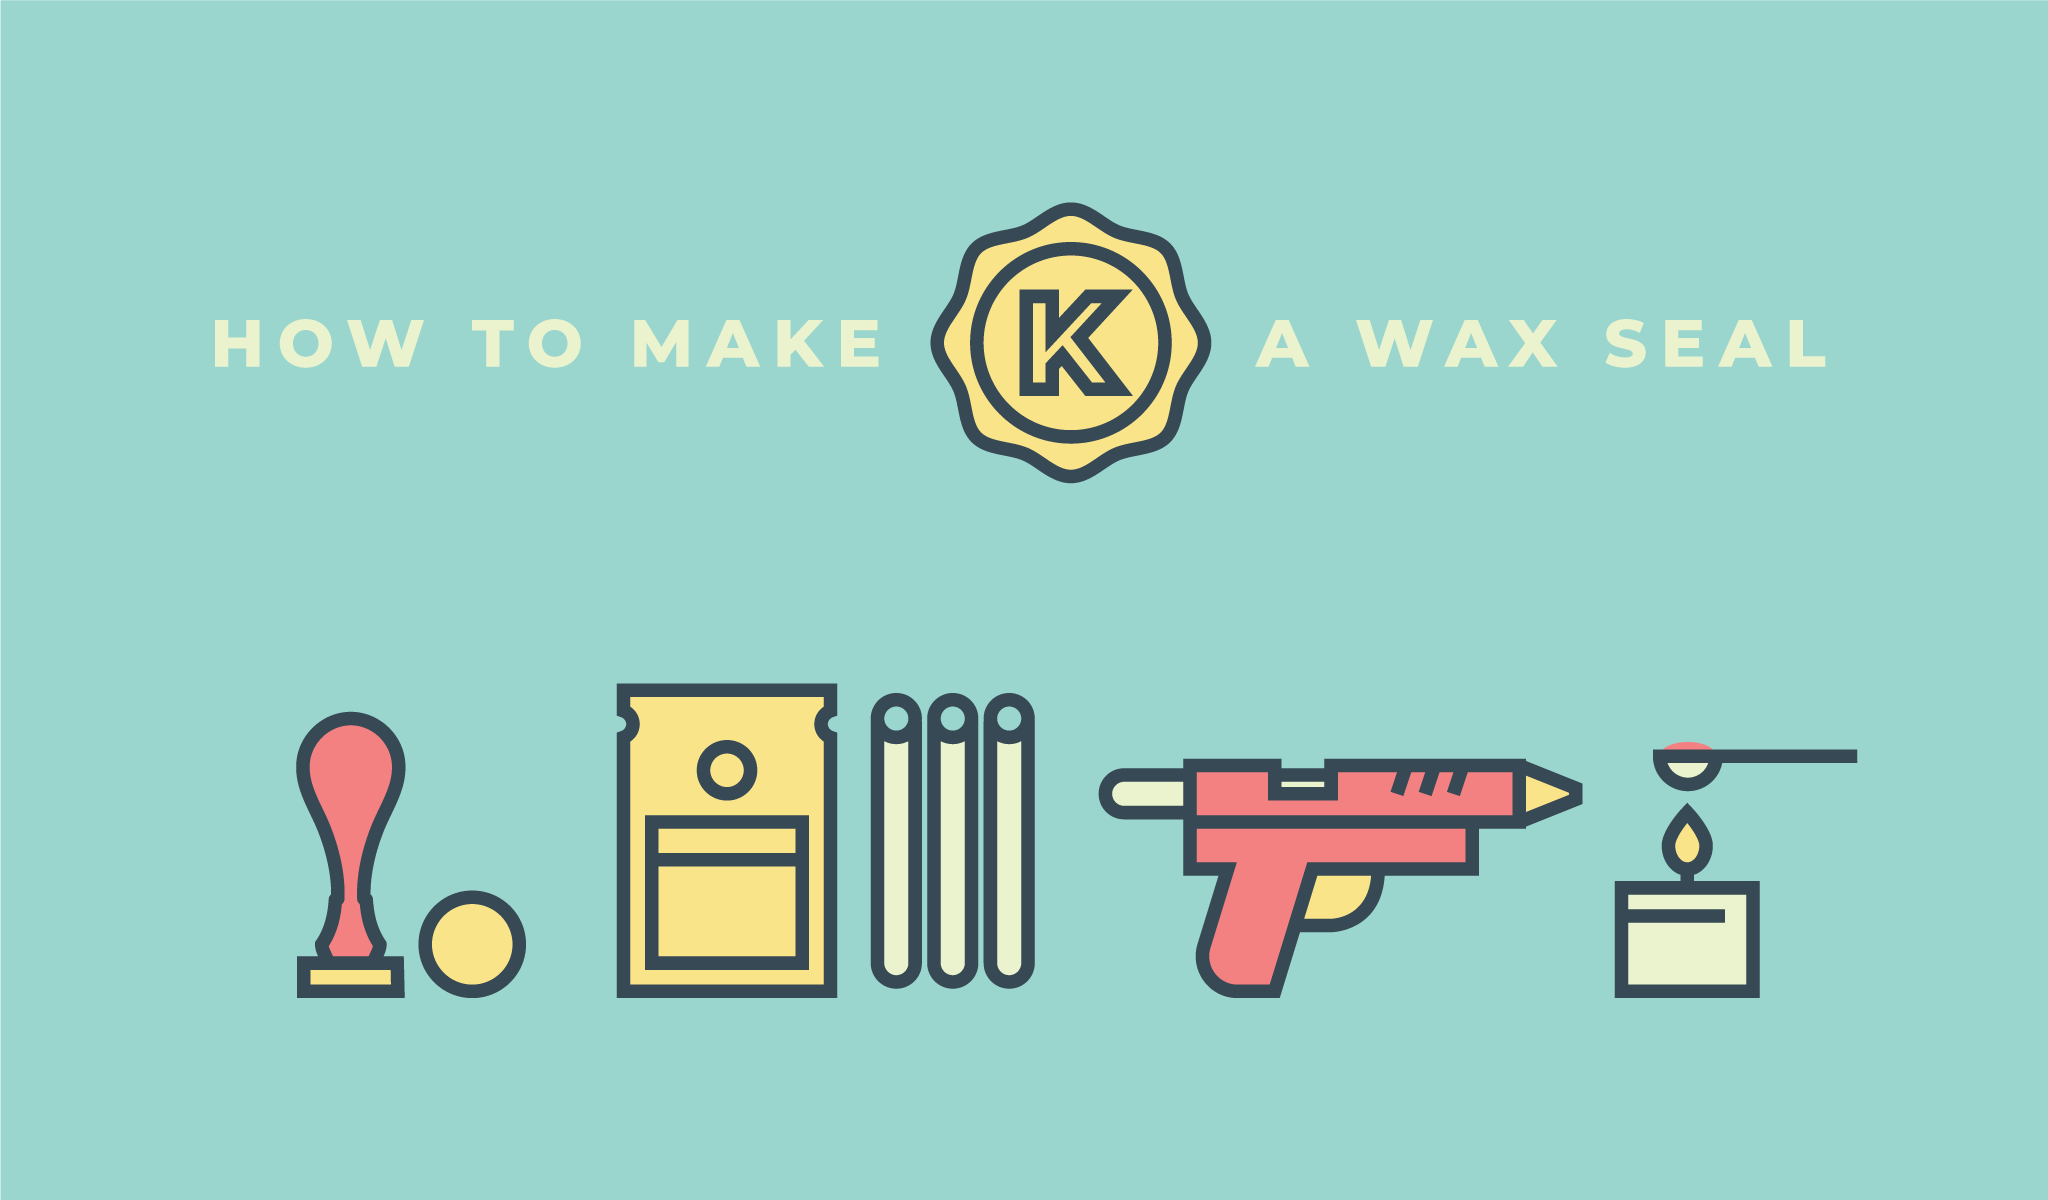 How to make a wax seal